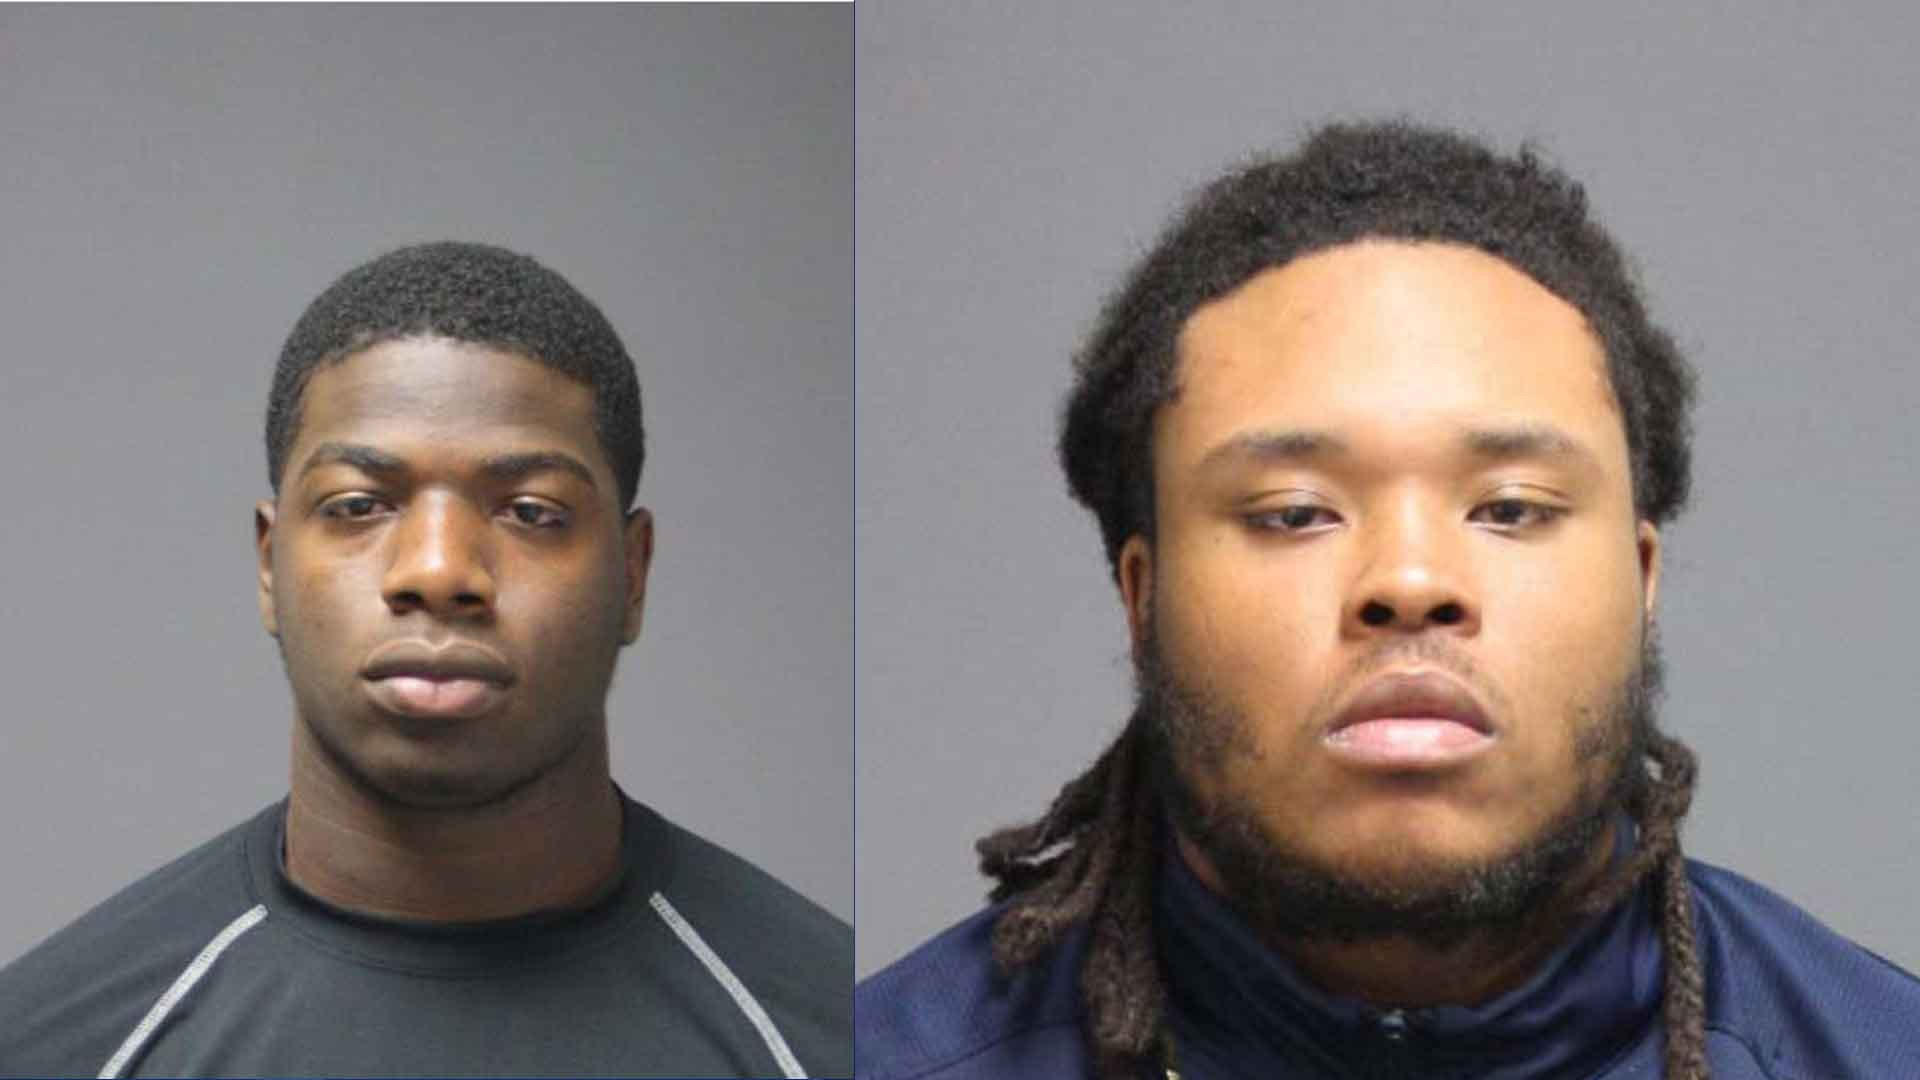 Nazir K Williams and Felton Alfonzo Blackwell, UConn football players, were arrested on a weapons charge after being pulled overin Storrs on Wednesday night.